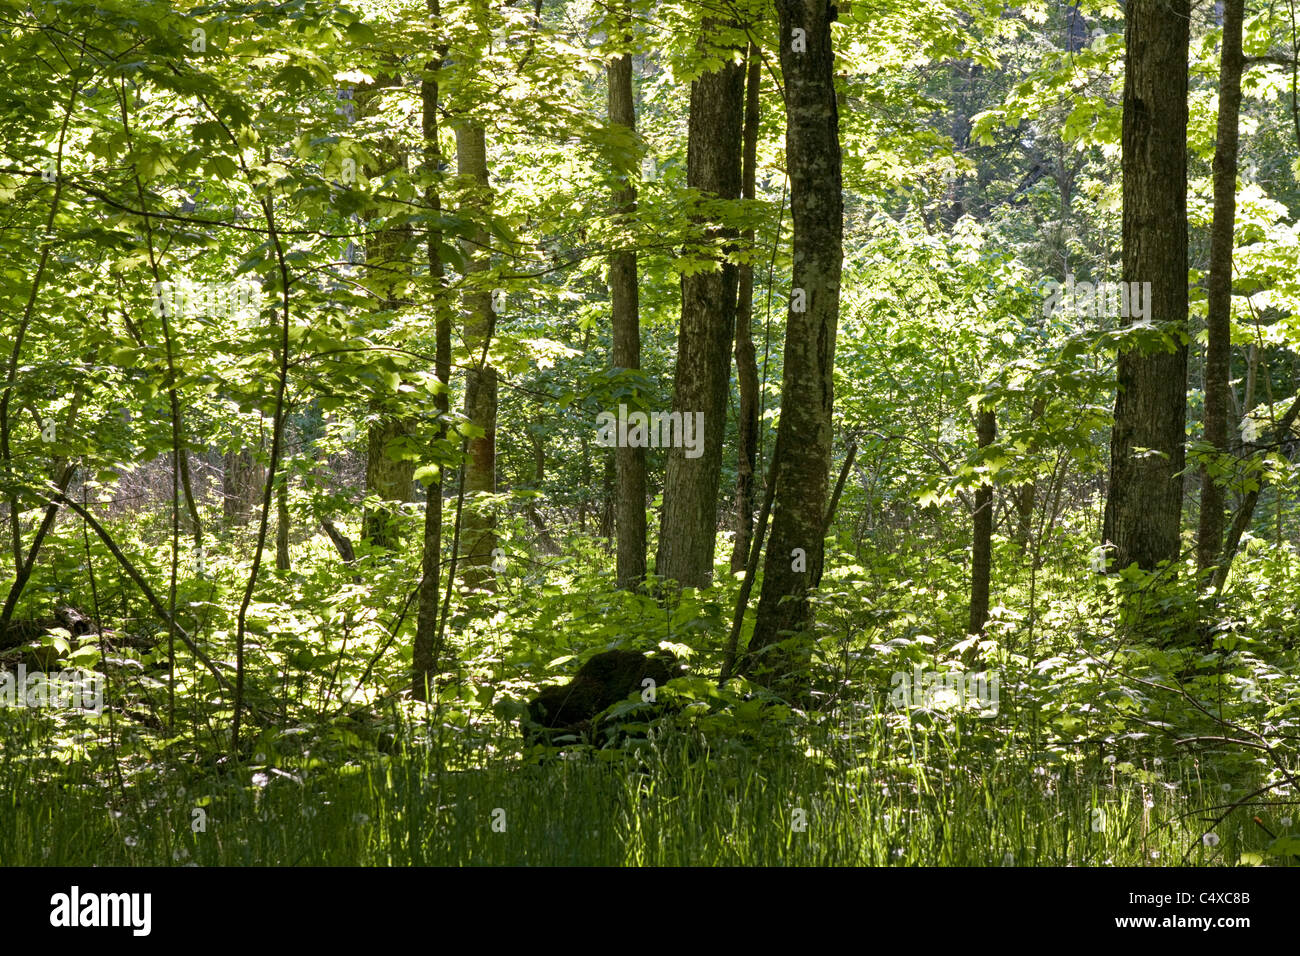 Early morning sun filters through a forest on Washington Island, Wisconsin. Stock Photo